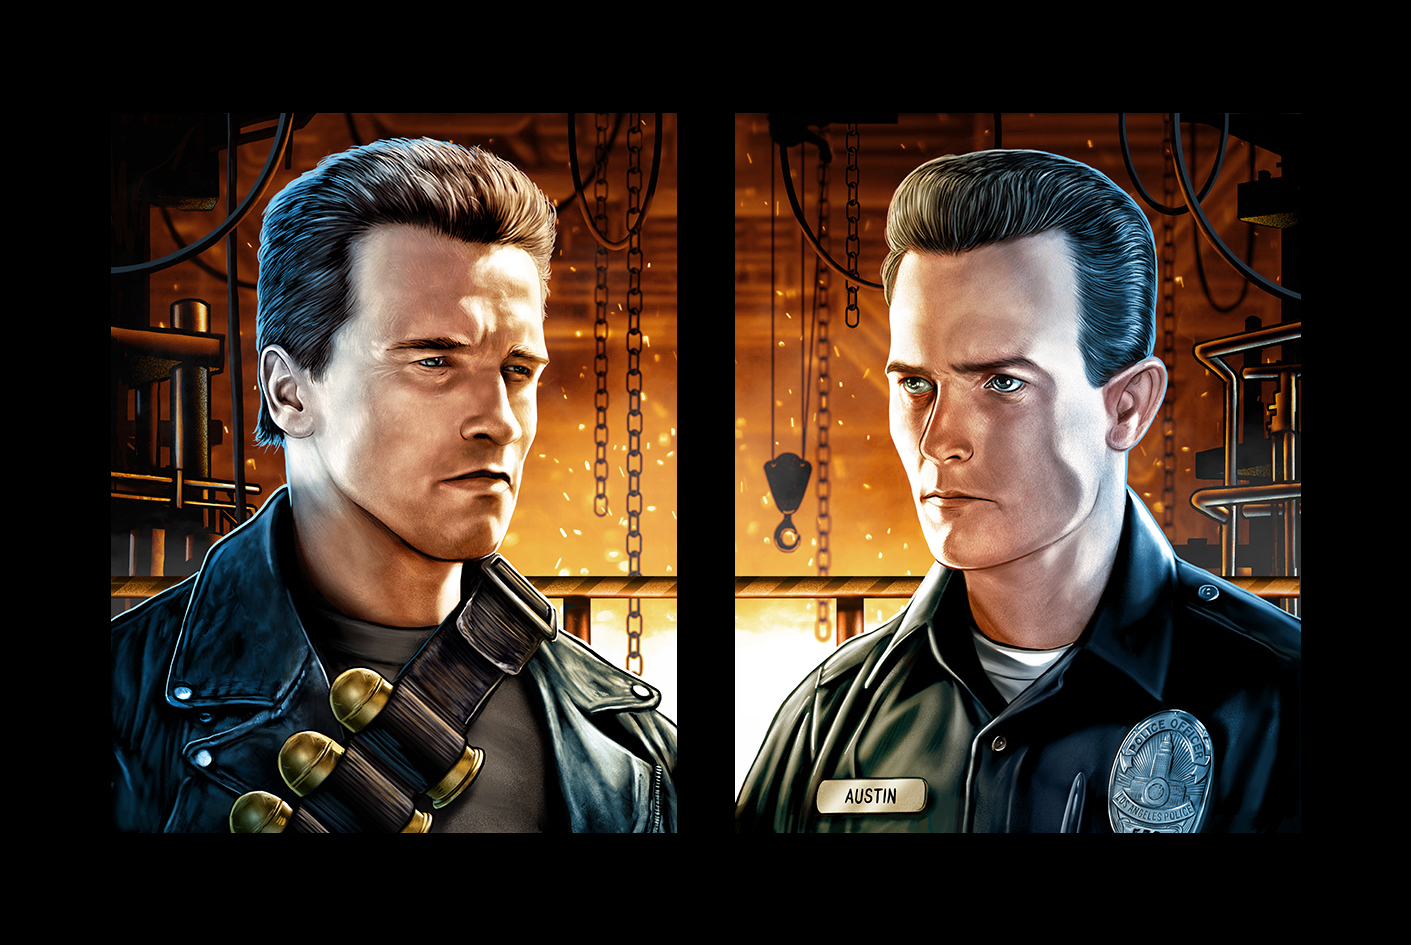 T2 Diptych Uncle Bob and Officer Austin Terminator Fan Art by Cuyler Smith